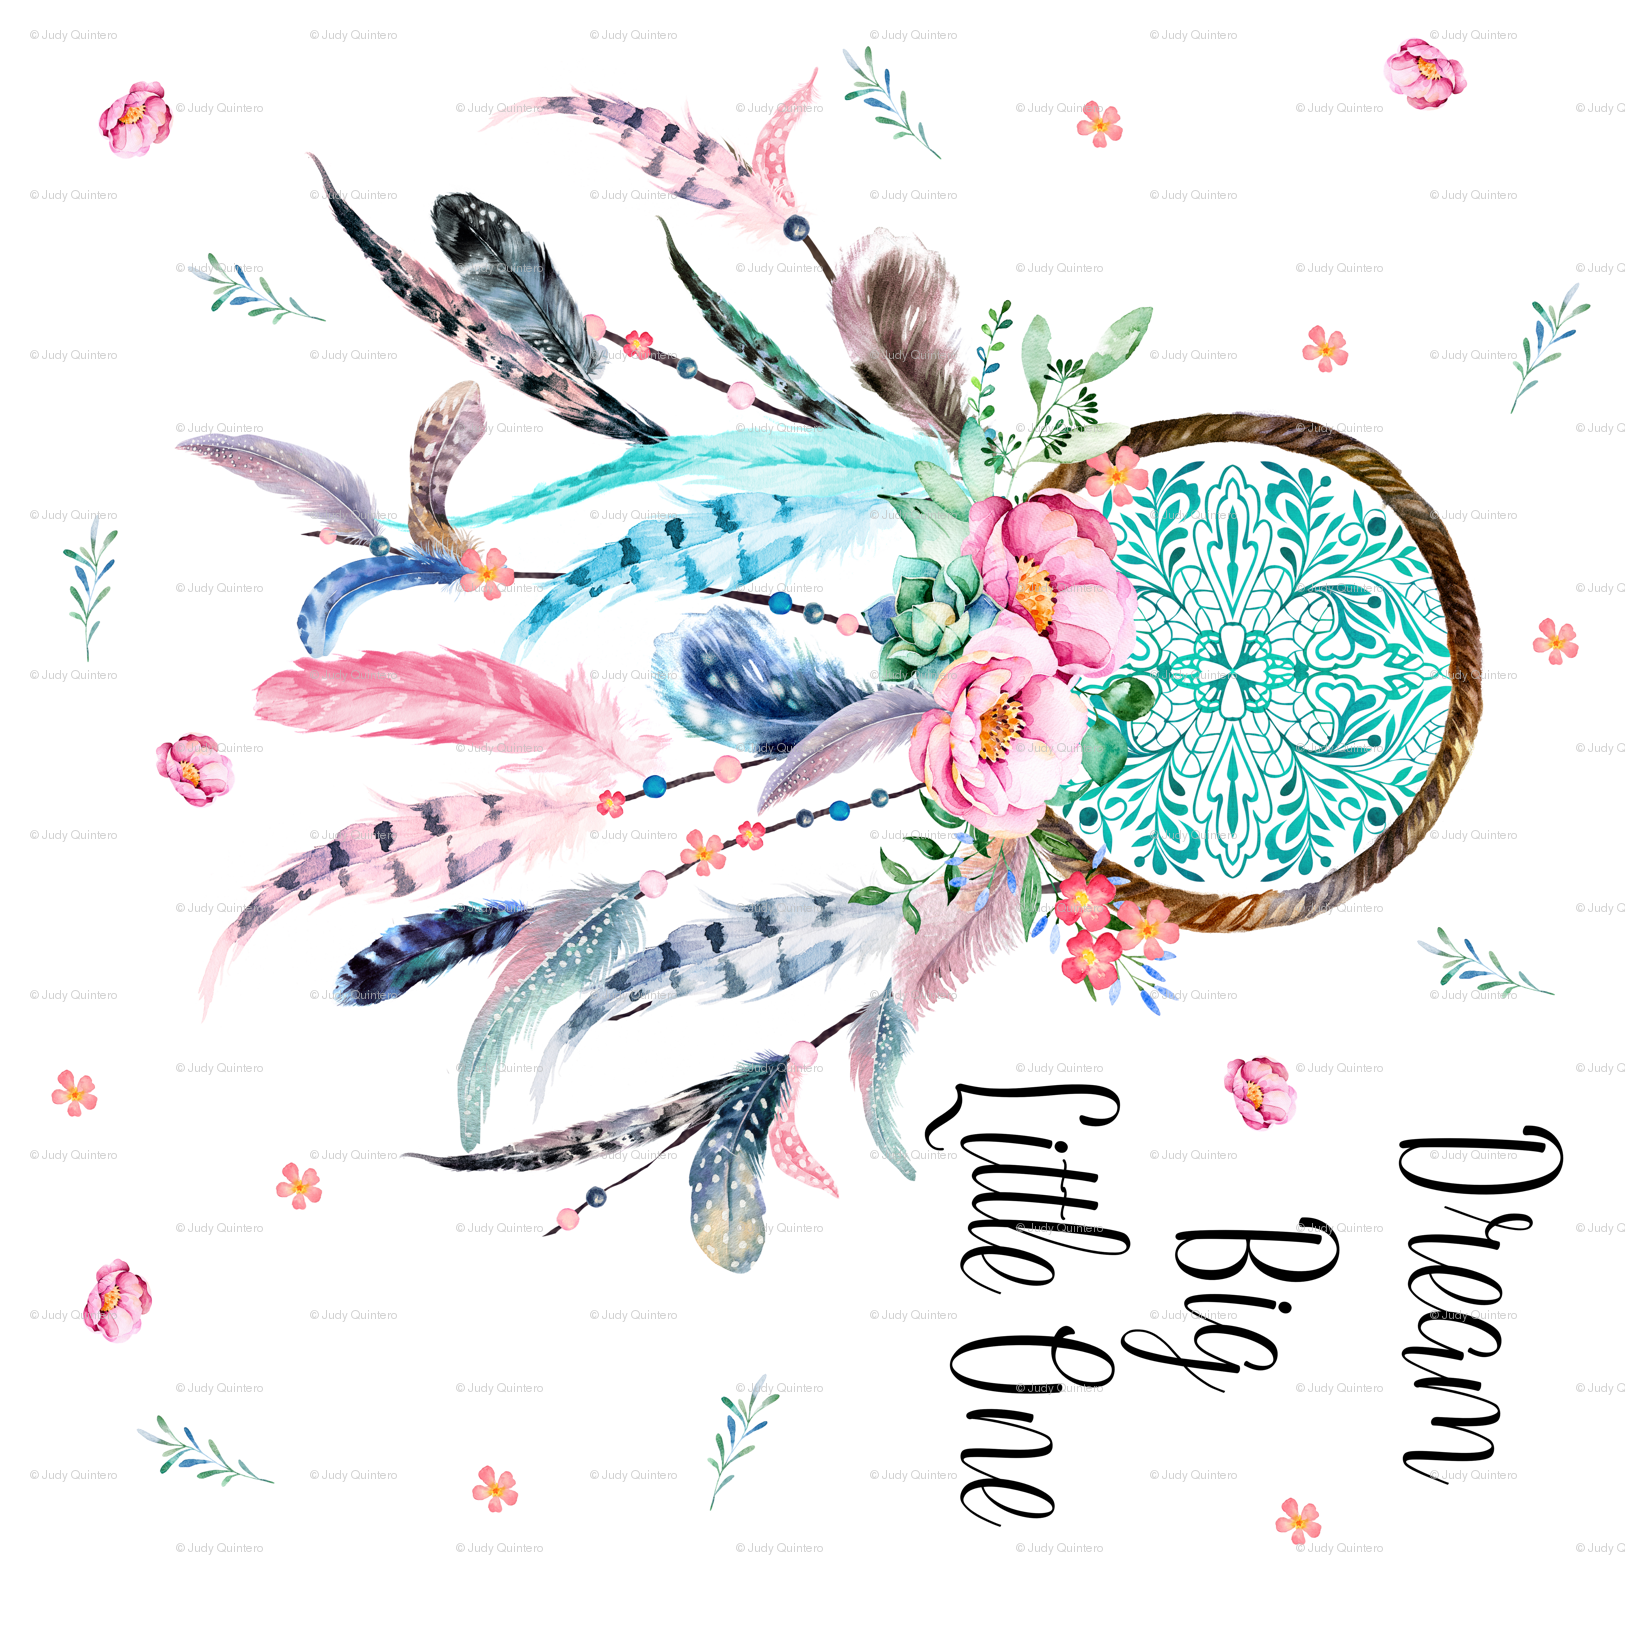 36x36 pink aqua dream catcher with quote dream big little one 36x36 pink aqua dream catcher with quote dream big little one fabric shopcabin spoonflower mightylinksfo